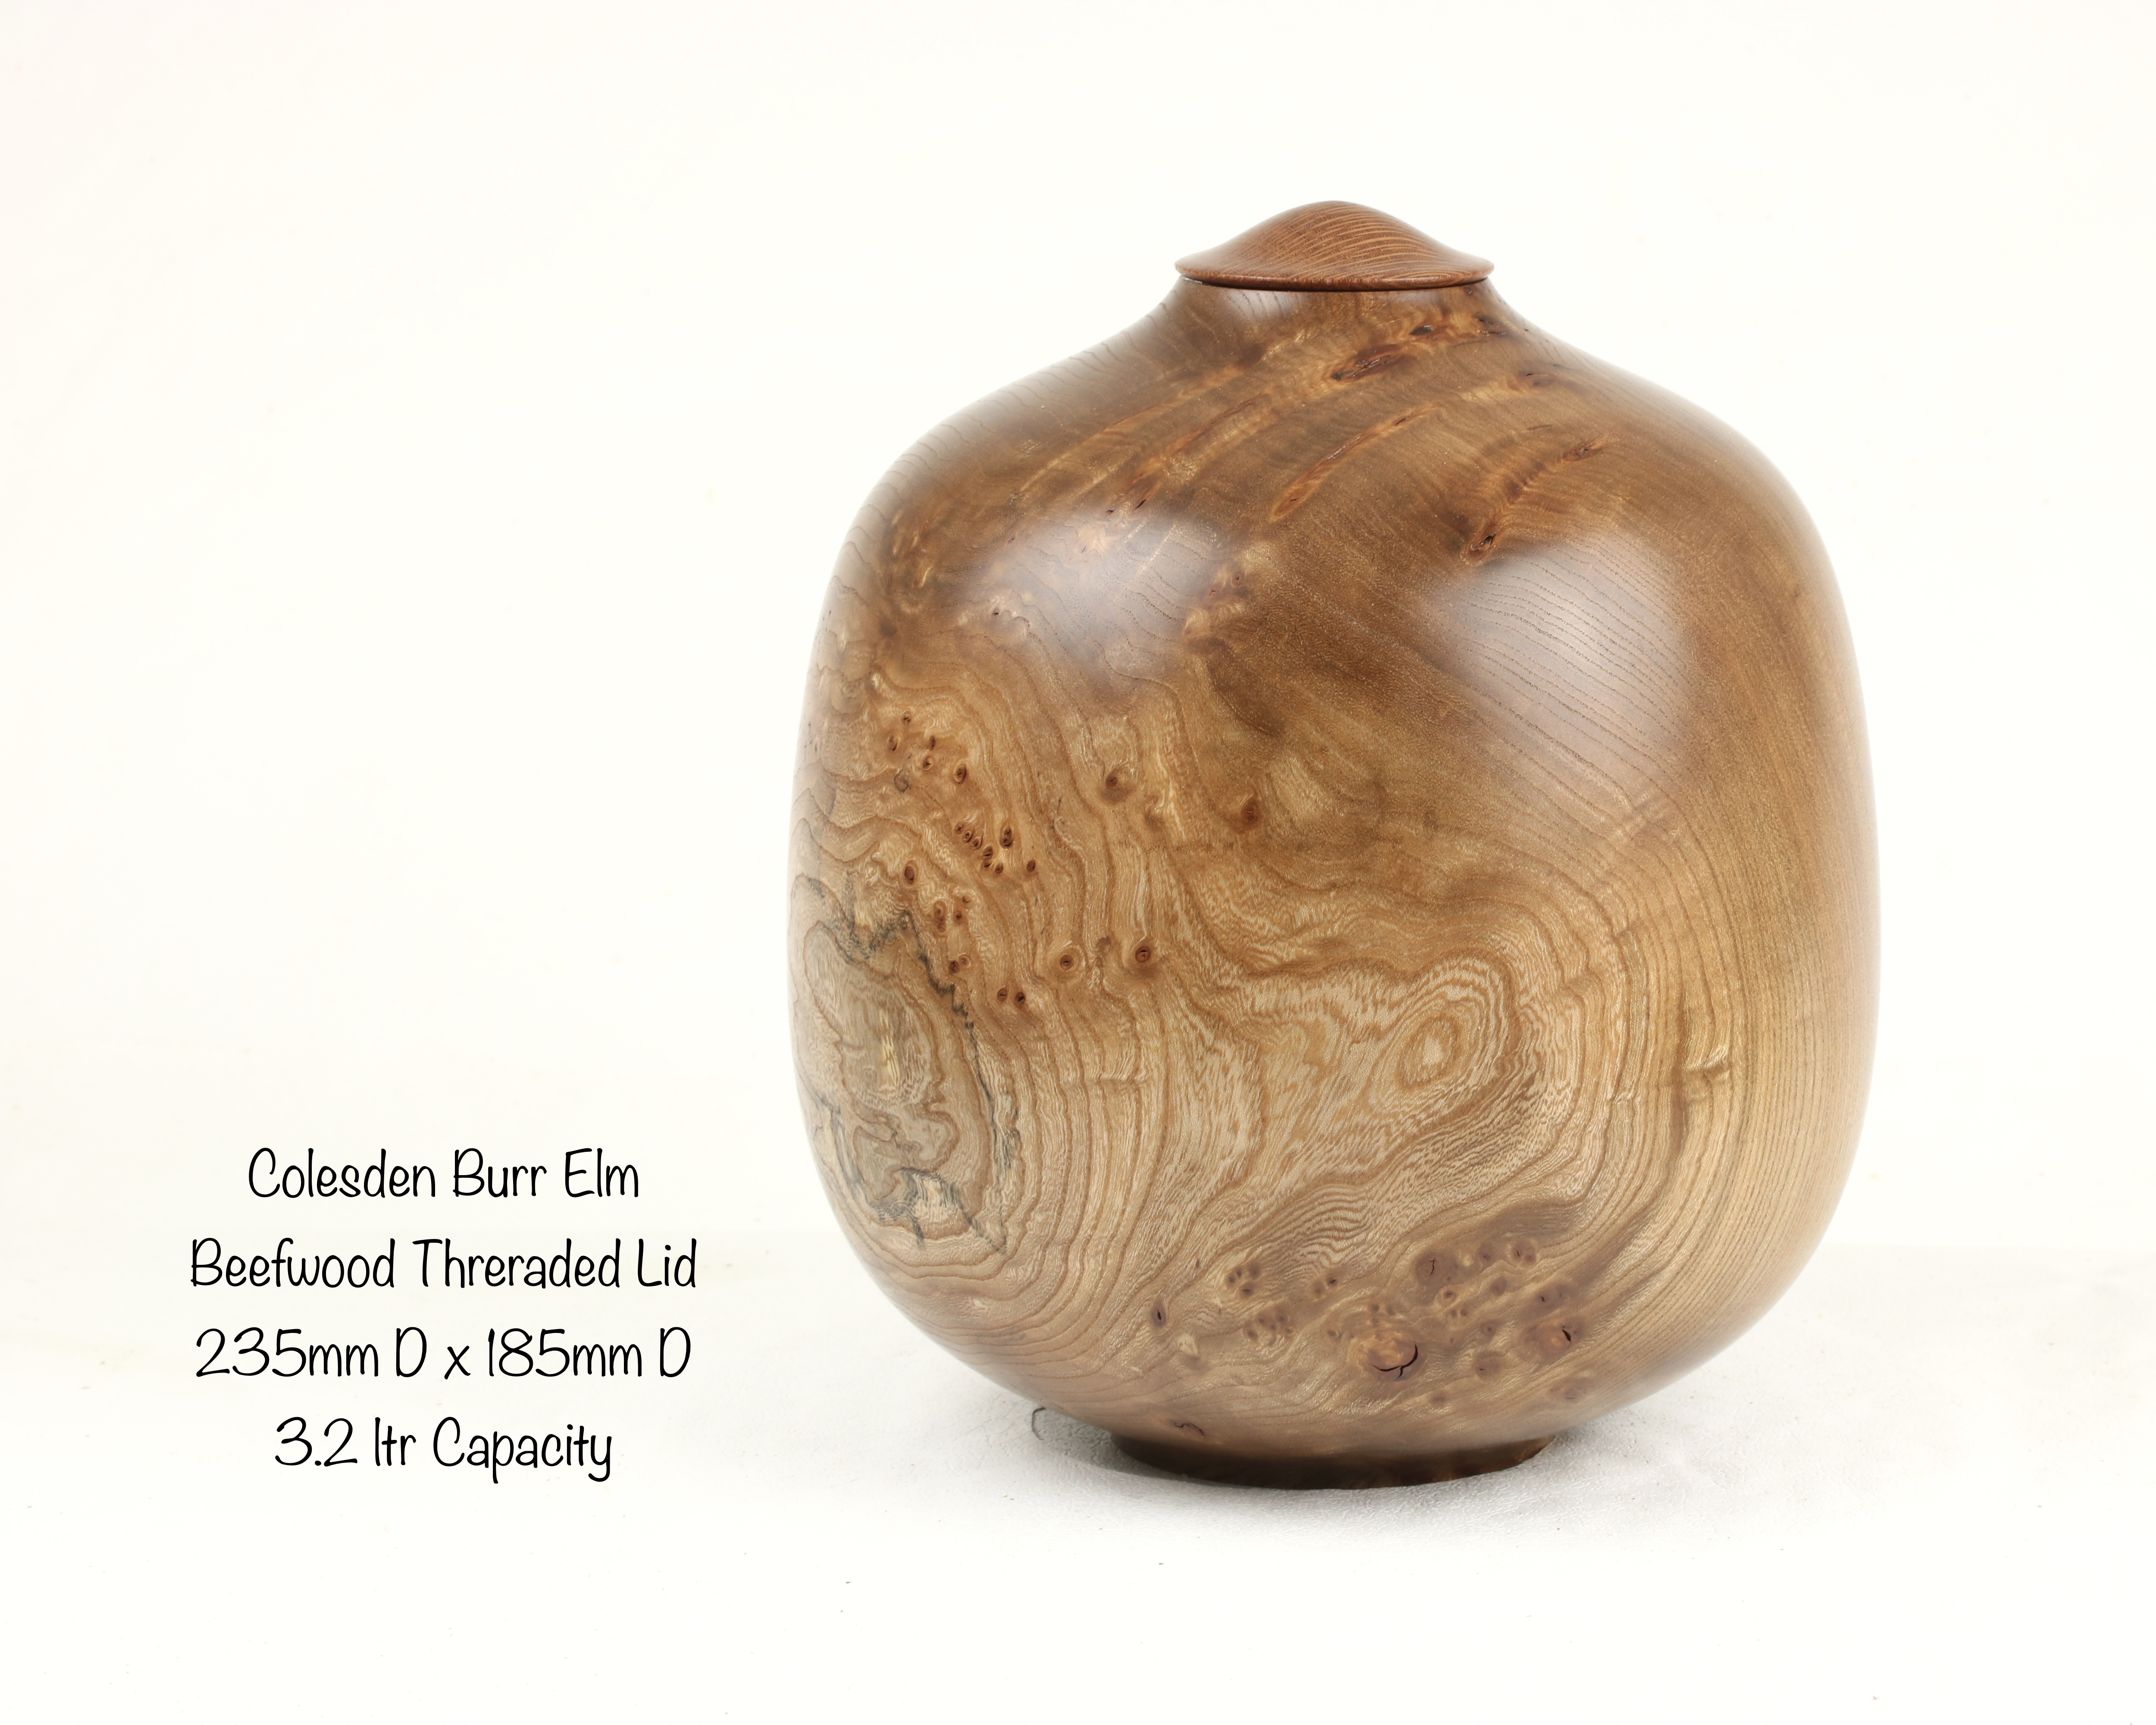 Colesden Burr Elm. Single Urn